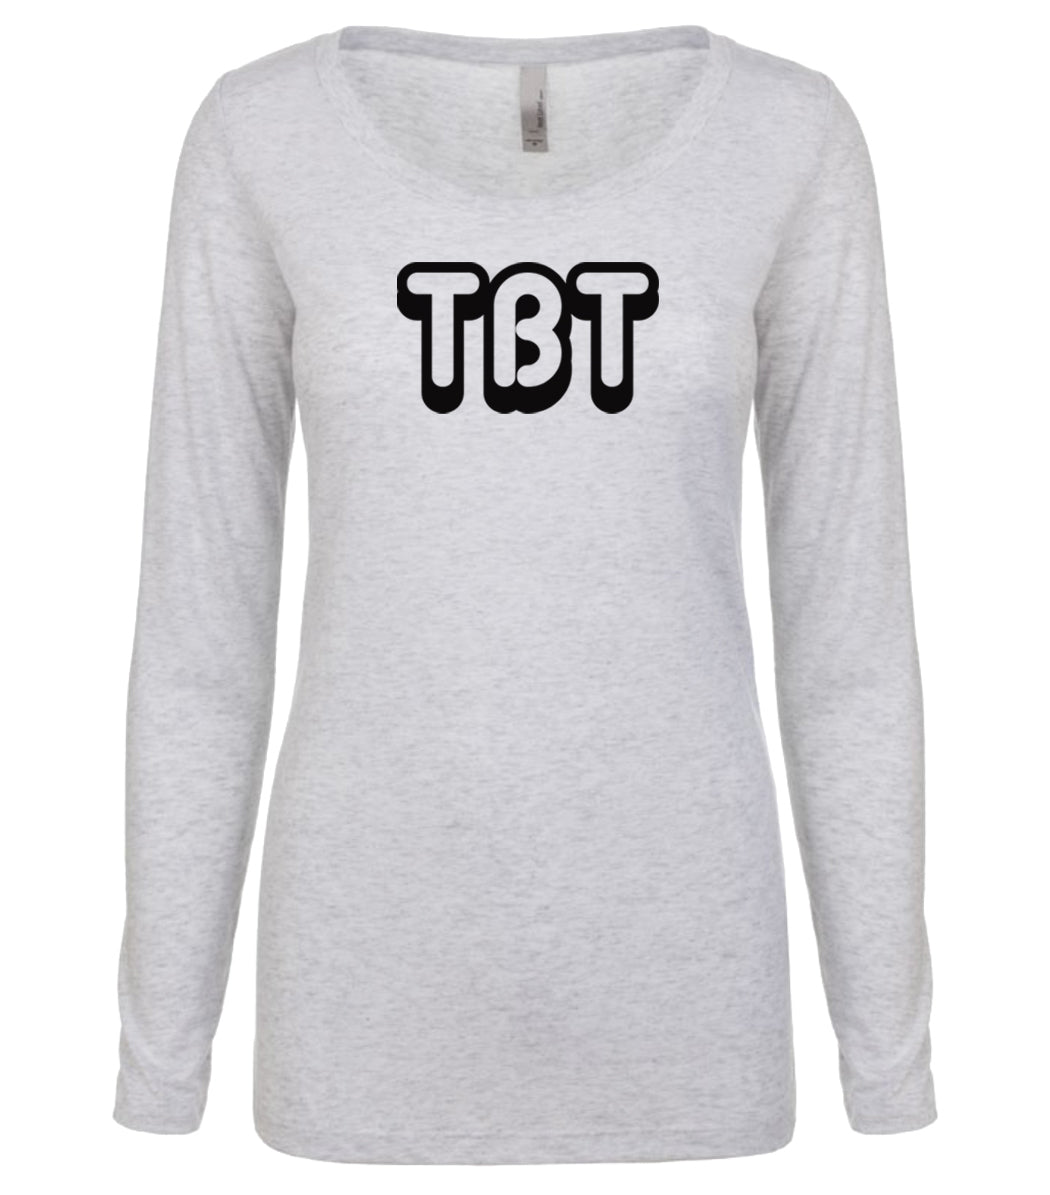 white TBT long sleeve scoop shirt for women